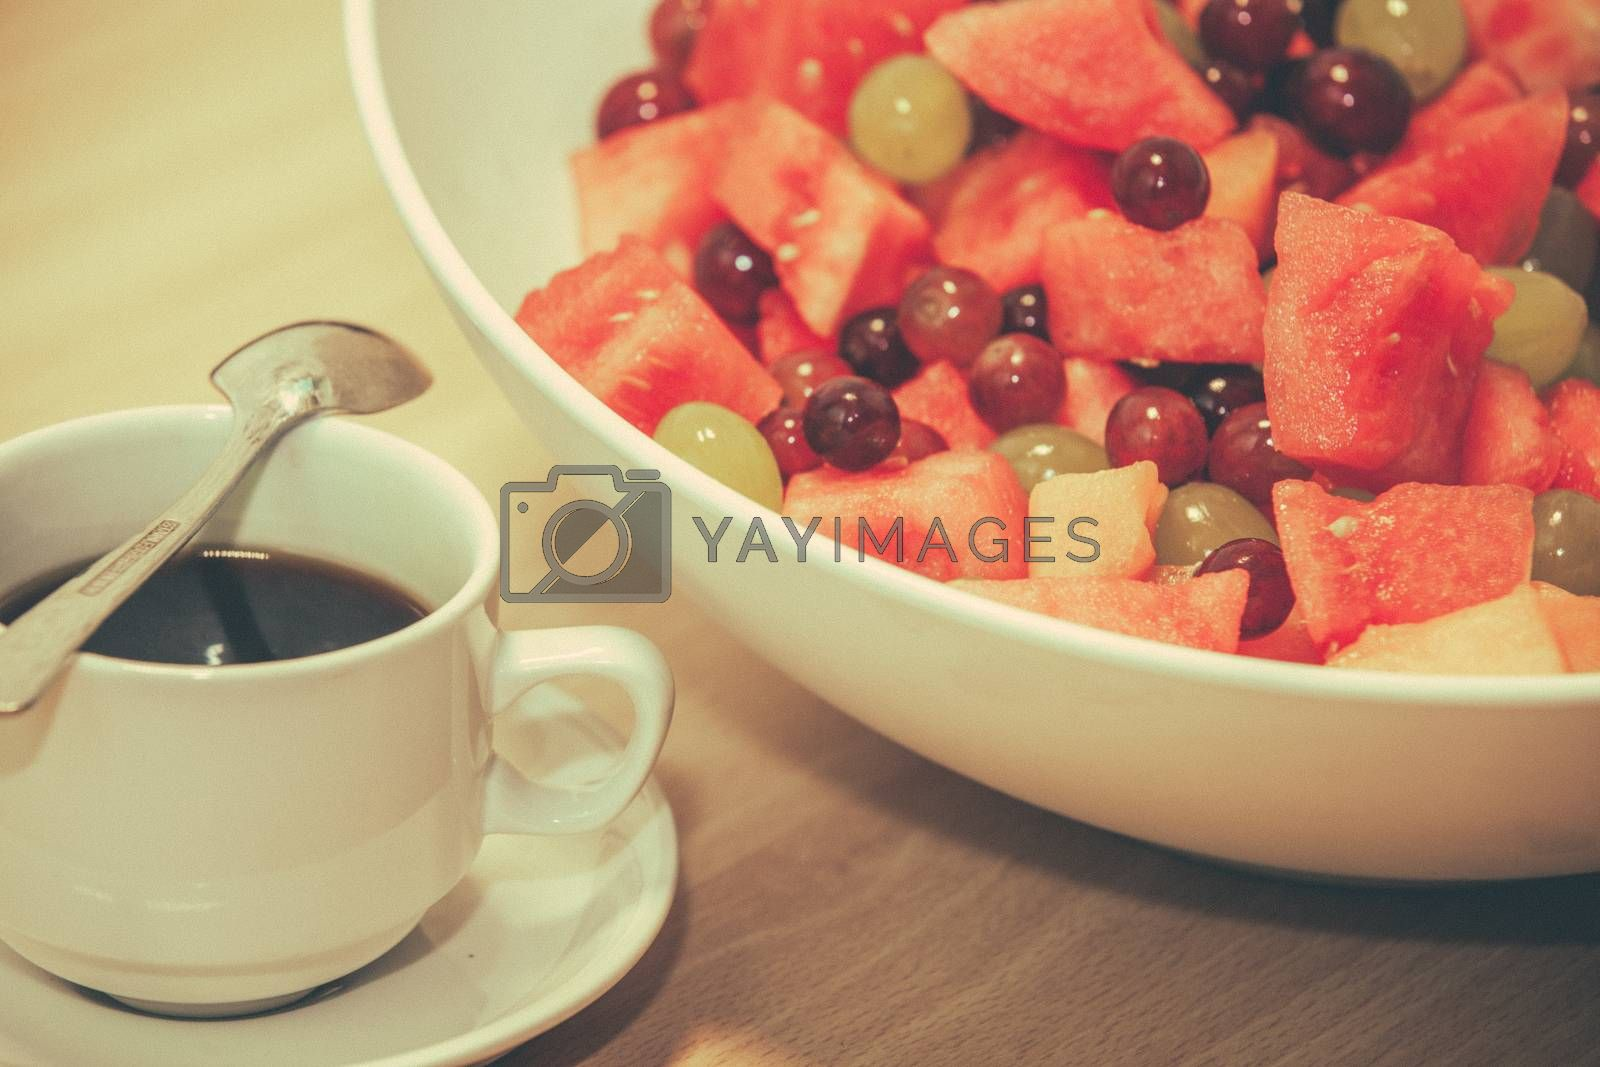 Cup of coffee and bowl of fresh fruits on a table served for breakfast